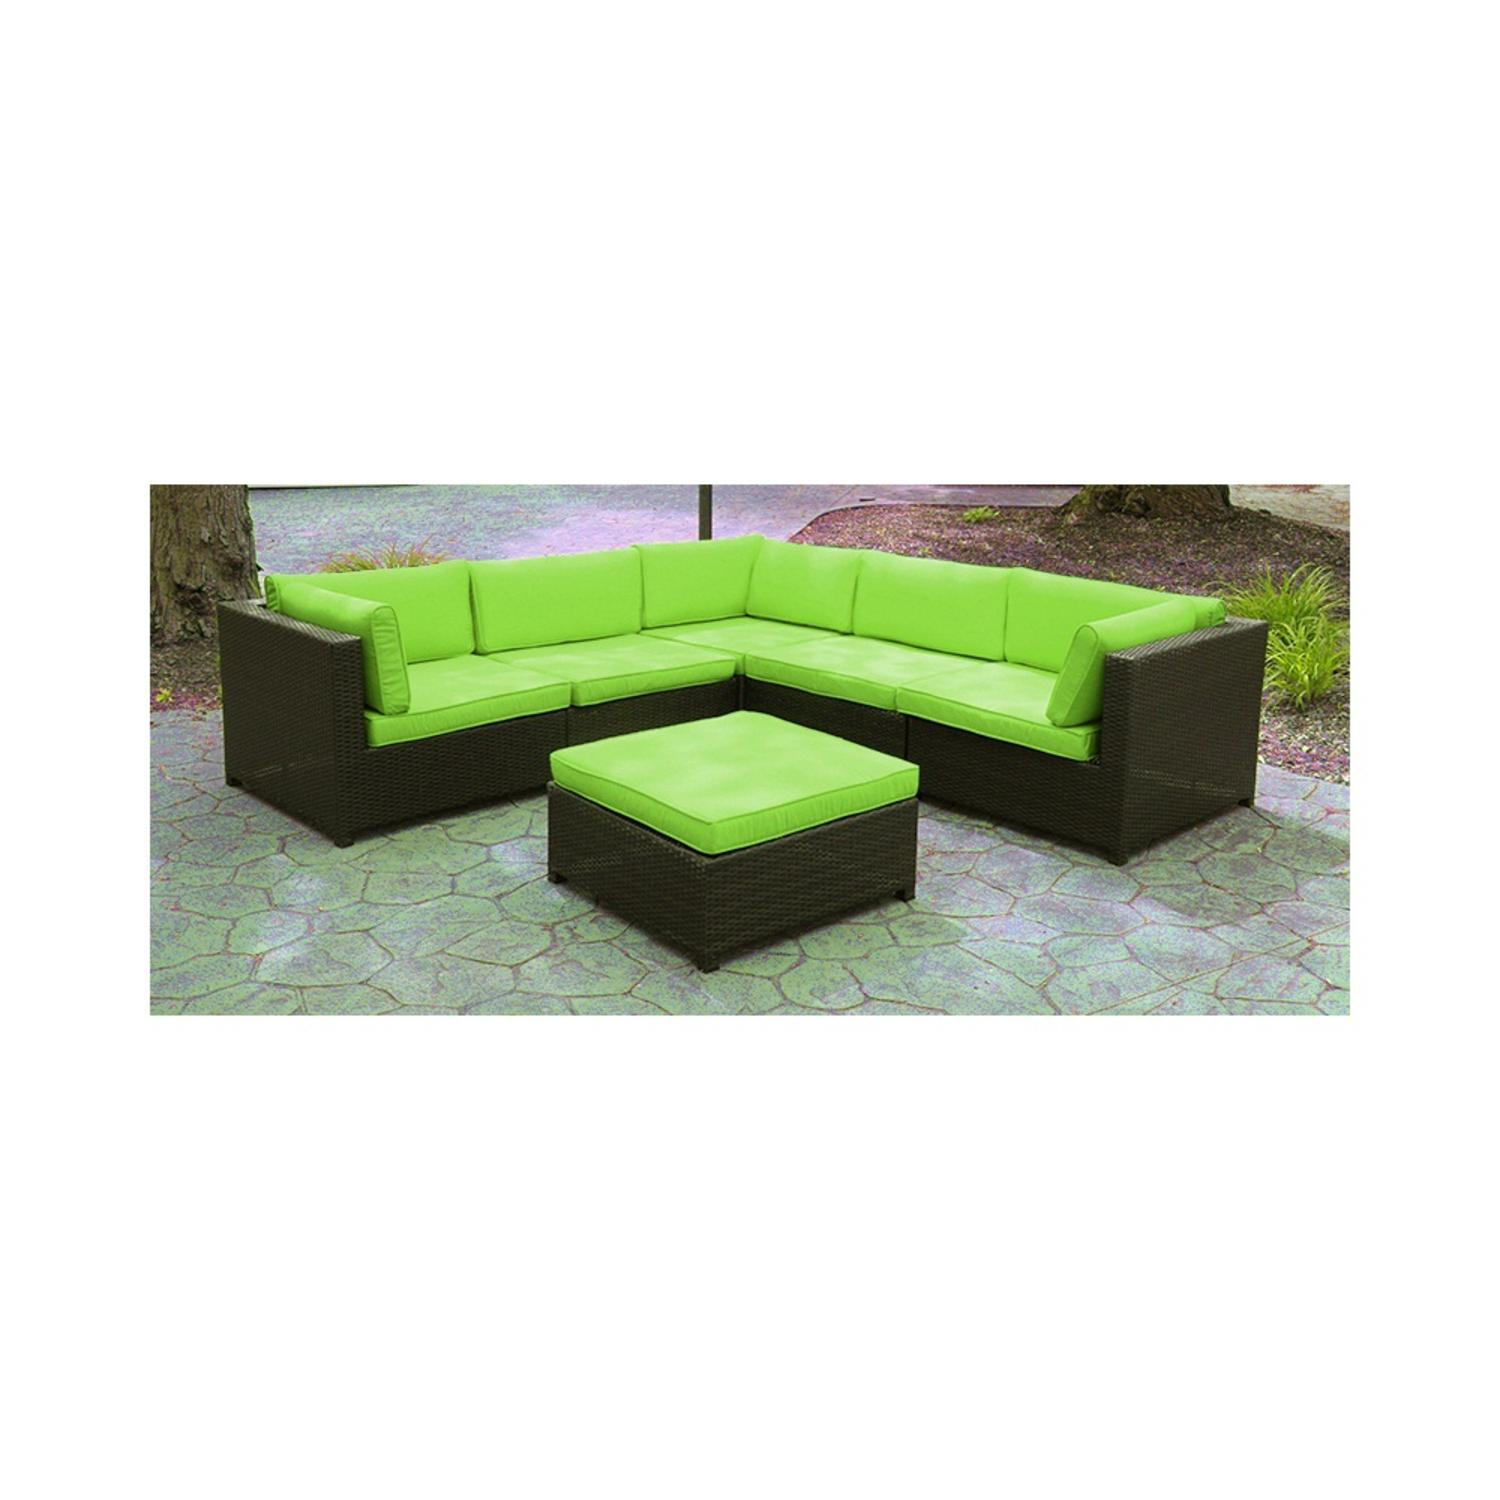 Black Resin Wicker Outdoor Furniture Sectional Sofa Set Lime Green Cushions by CC Outdoor Living